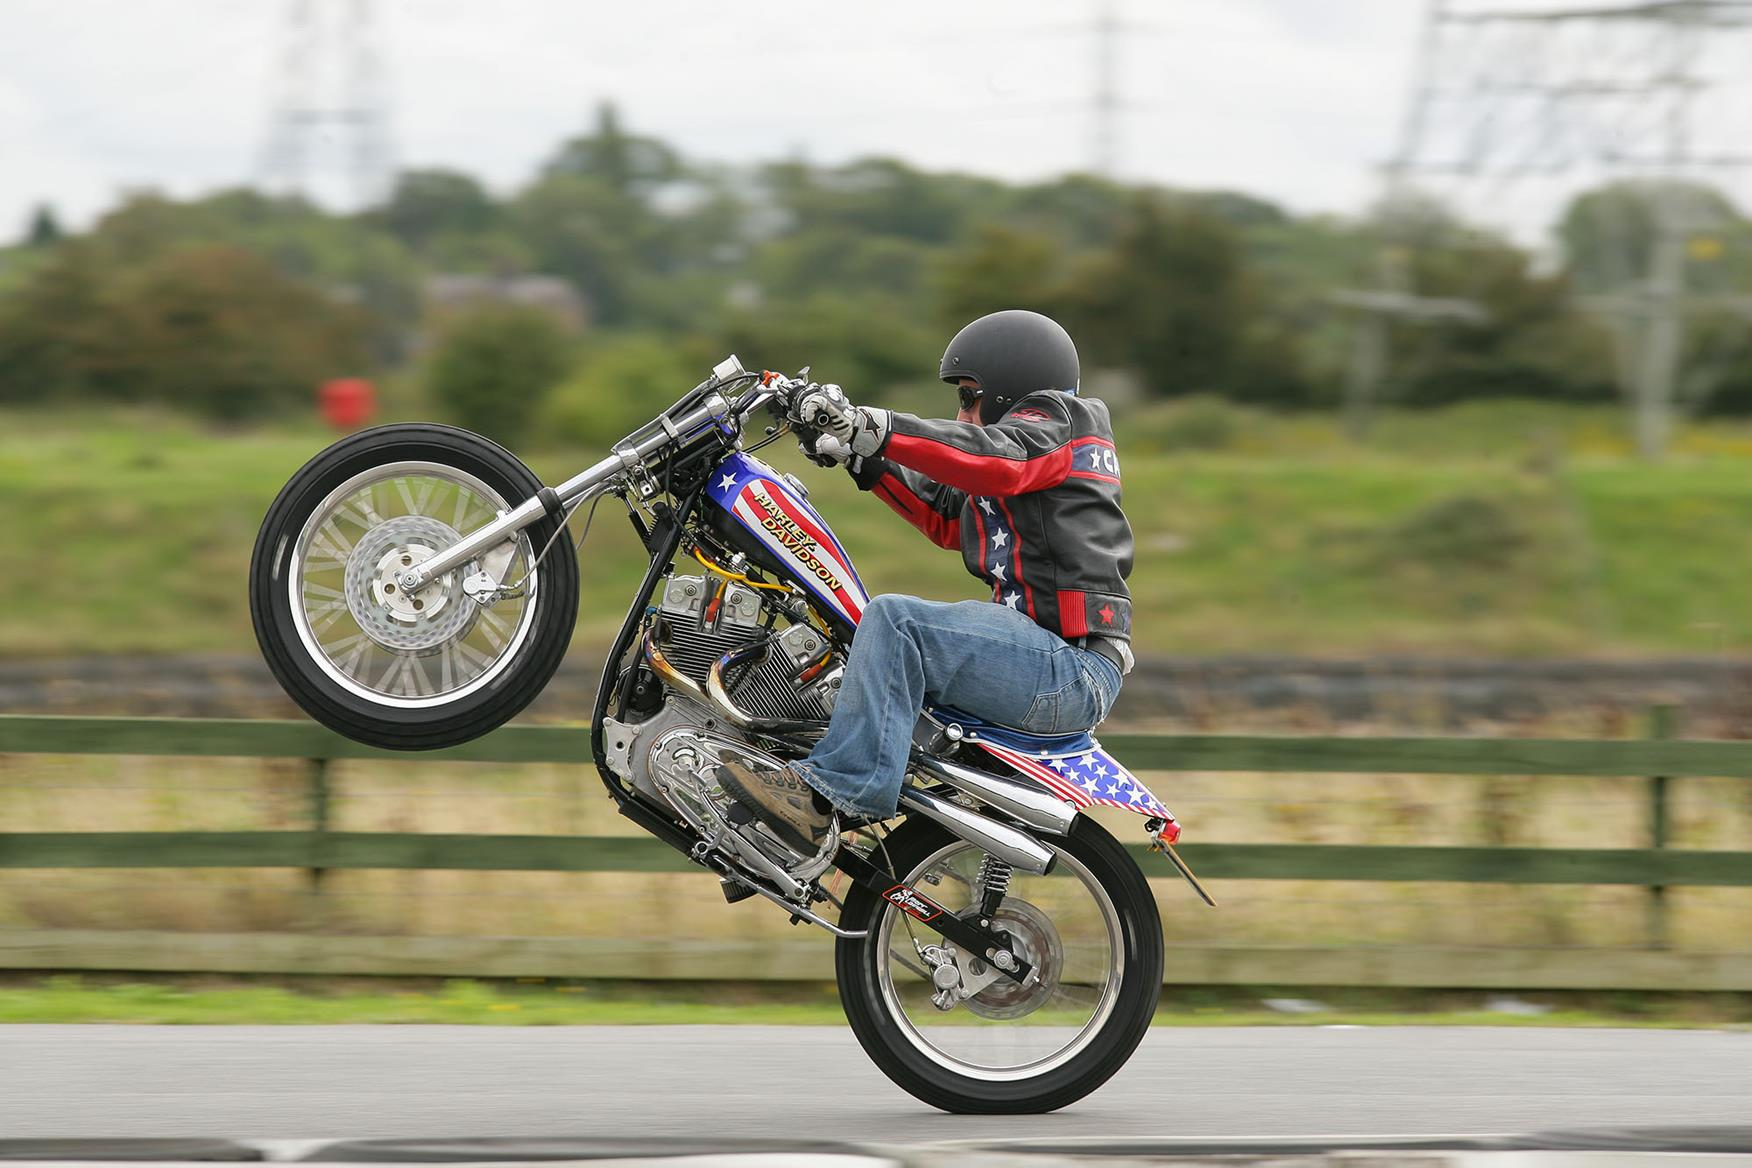 Evel Knievel S Harley Davidson Xl1000 Up For Auction: The Day MCN Rode An Evel Knievel Harley-Davidson XR750 Replica